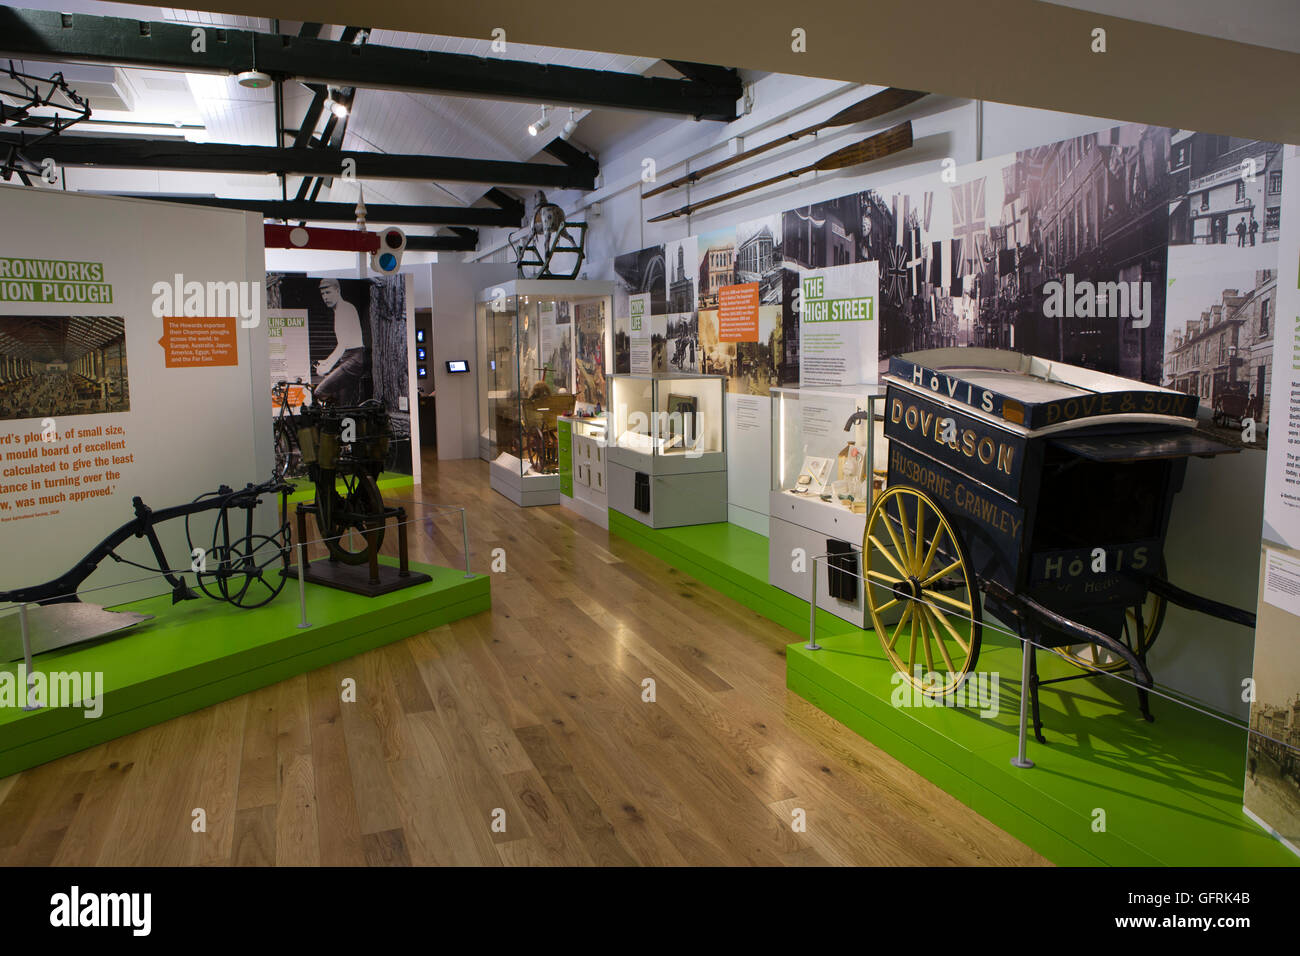 UK, England, Bedfordshire, Bedford, The Higgins museum, local industry gallery exhibits - Stock Image